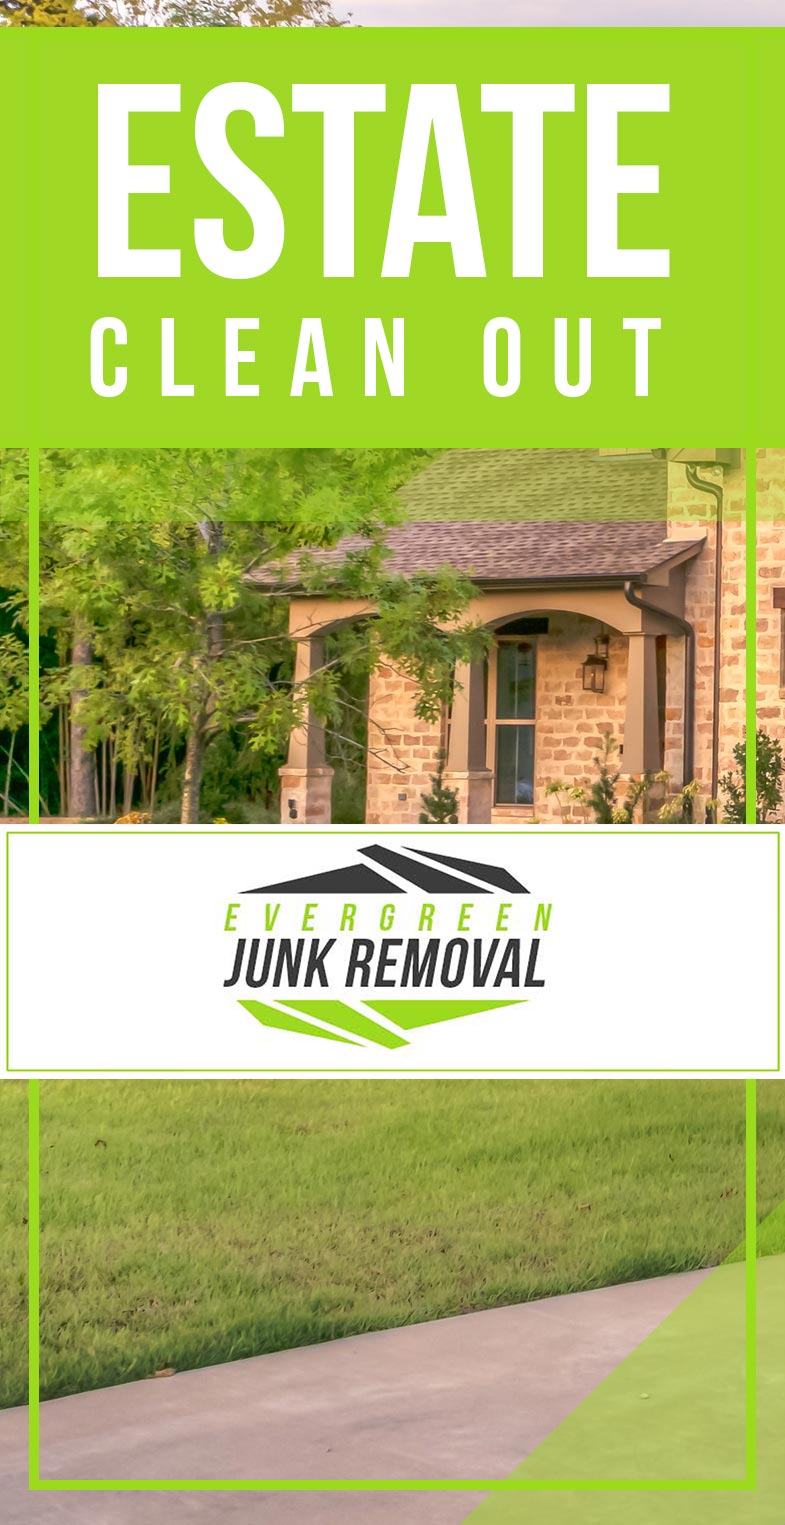 Galveston Property Clean Out